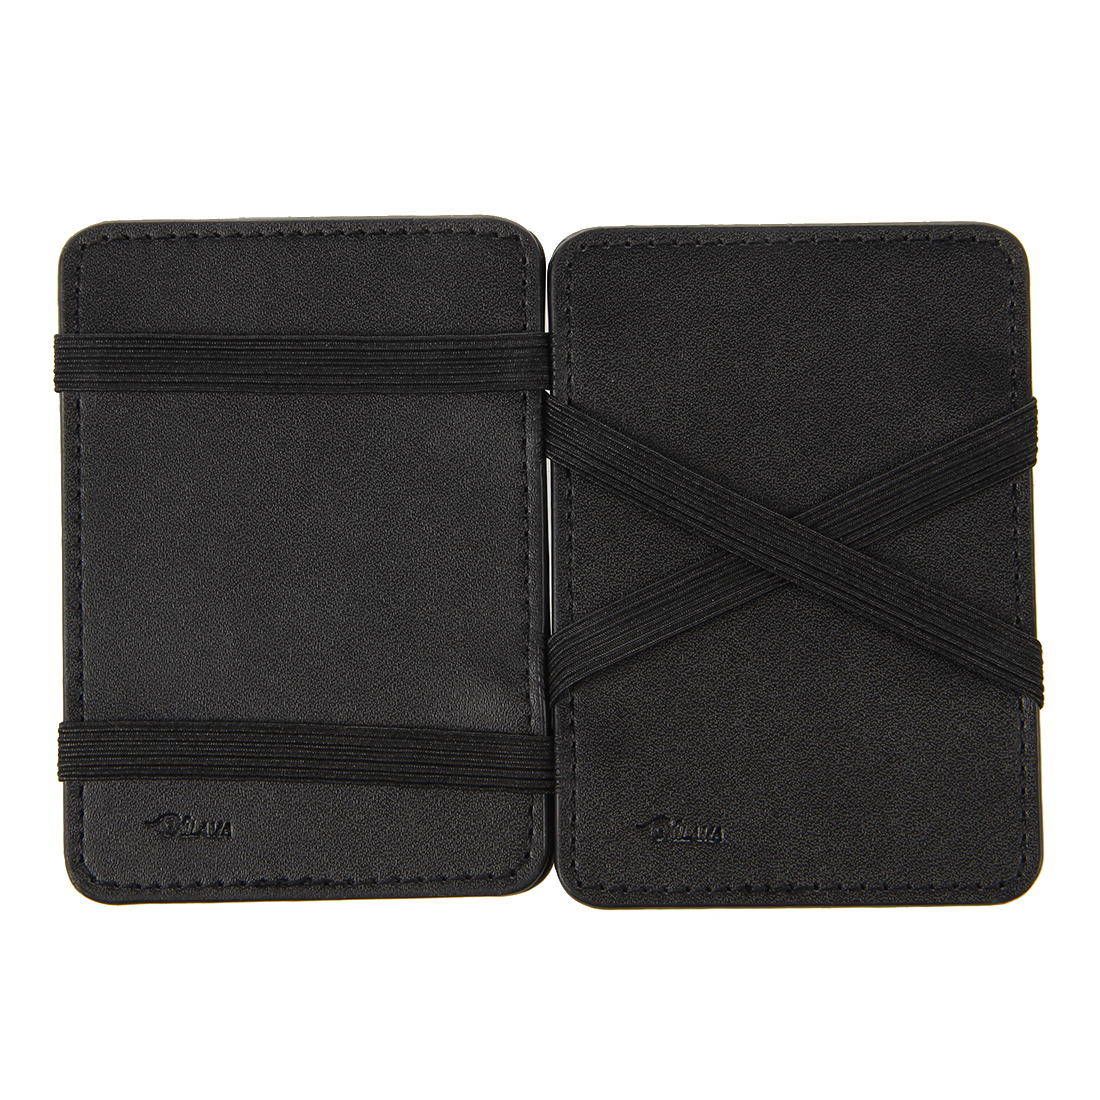 Mens-Magic-Flip-Wallet-Money-Clip-Bifold-Slim-Credit-Card-Holder-Purse-A7M7 thumbnail 7